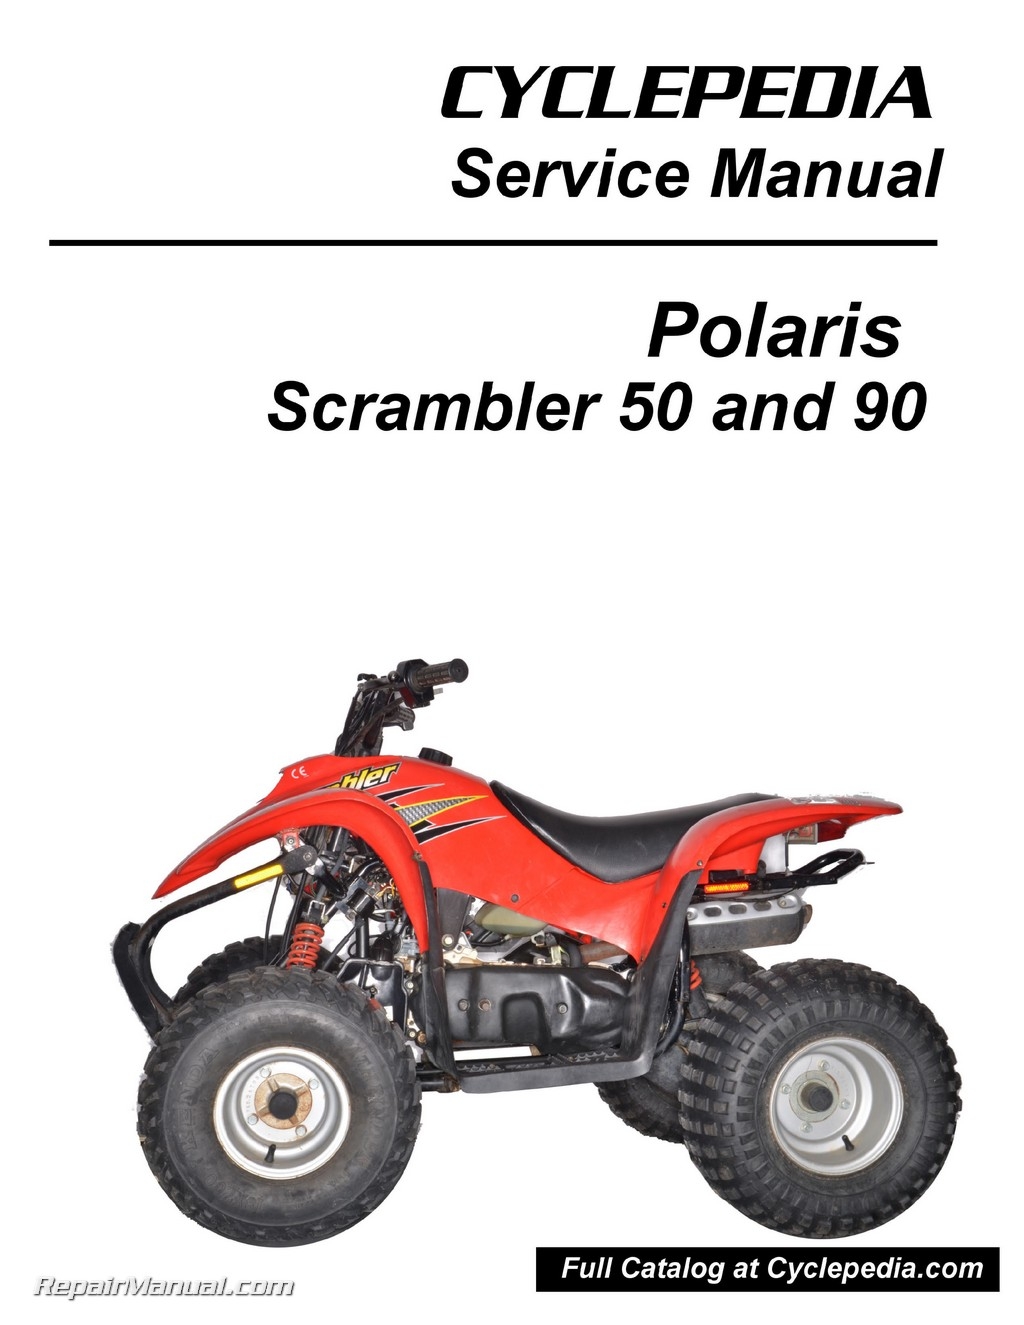 2003 Polaris Predator 90 Wiring Diagram Scrambler Modern Design Of 03 Ranger 50cc 90cc Atv Print Service Manual By Cyclepedia Rh Repairmanual Com 50 2006